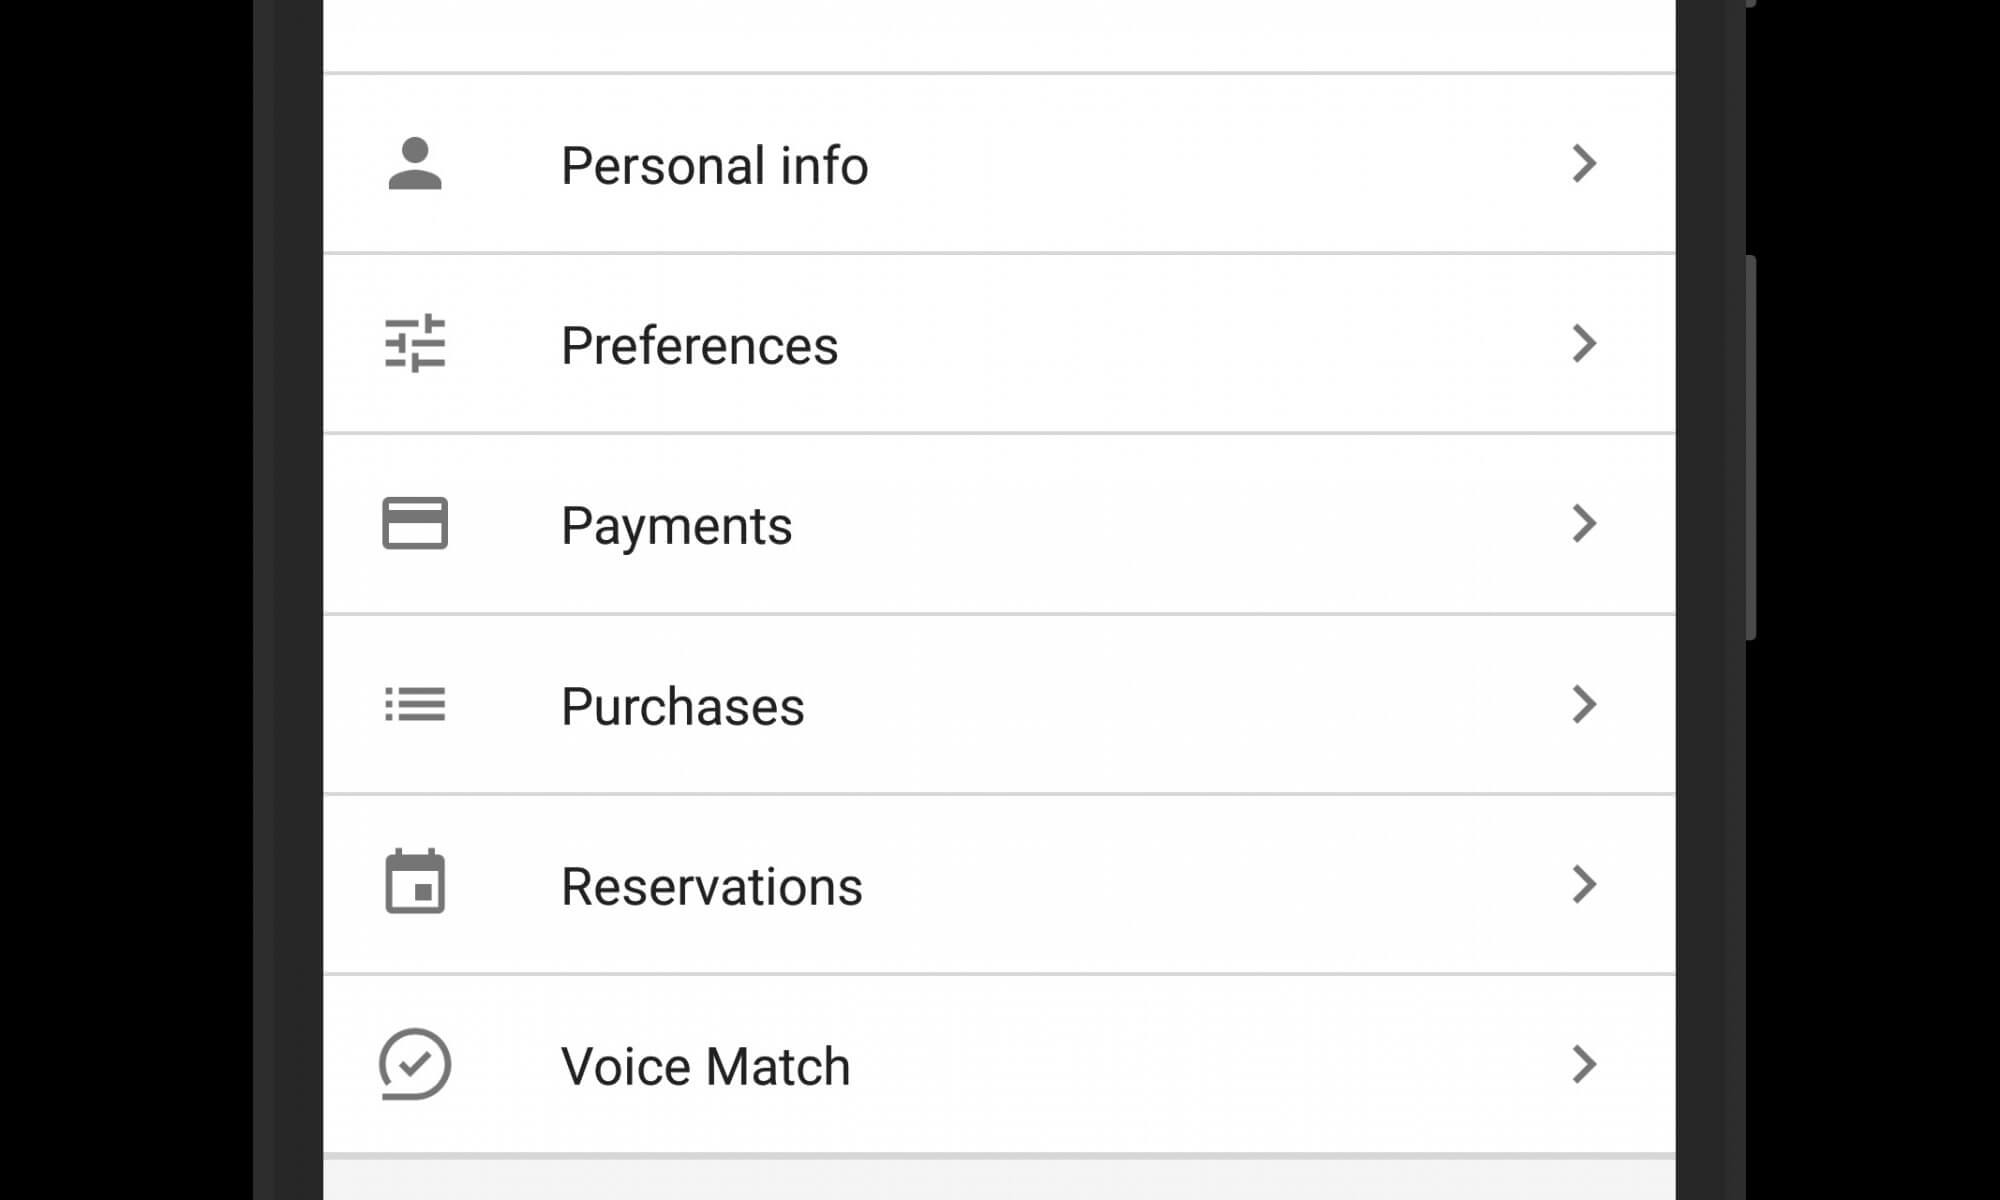 Purchases and Reservations in Google Assistant